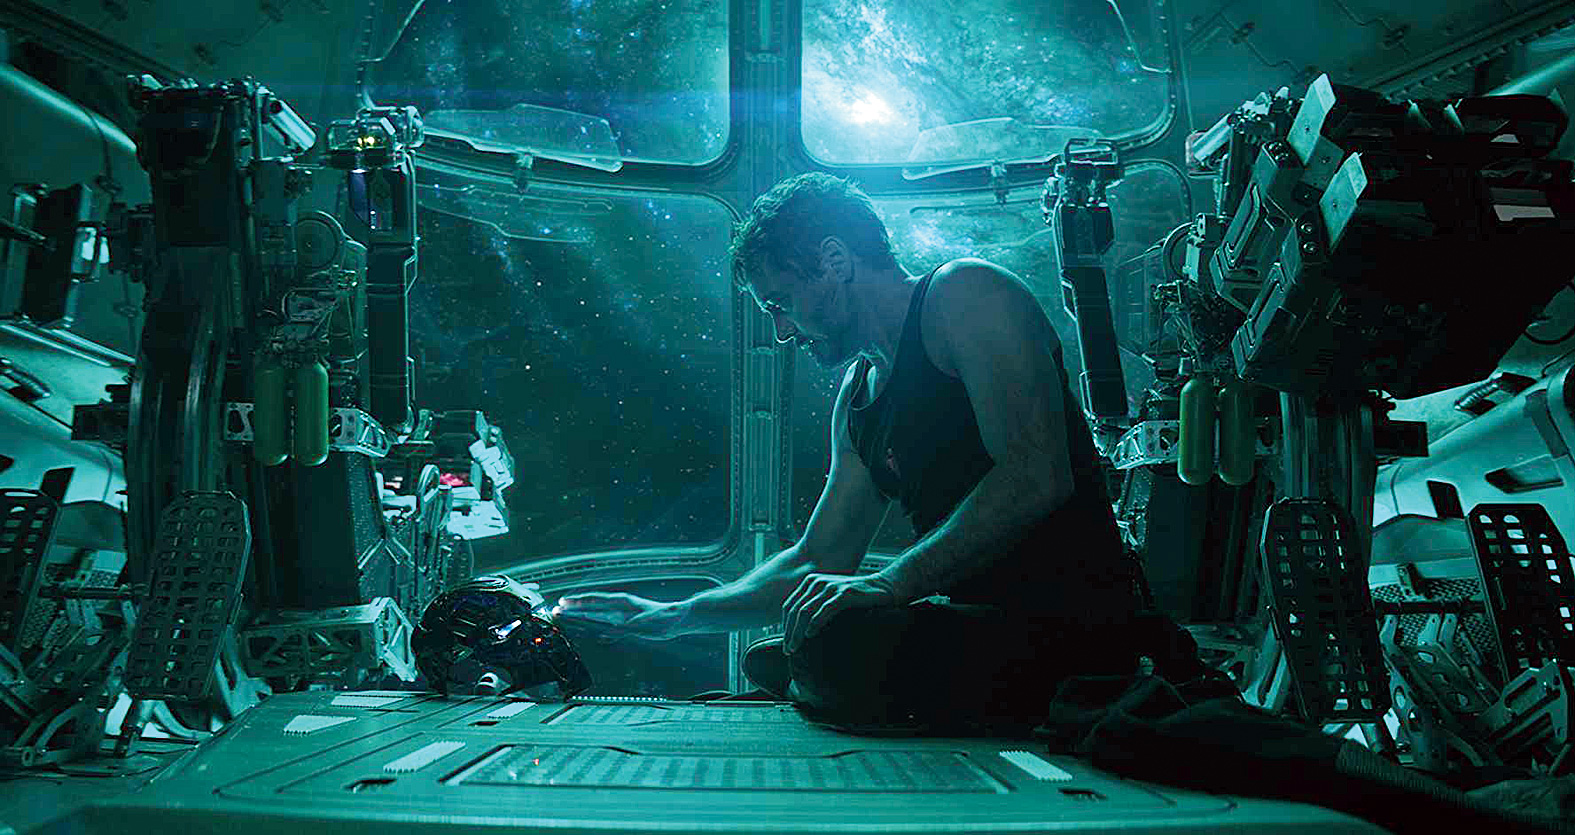 Robert Downey Jr. as Iron Man in Avengers: Endgame, which releases on April 26